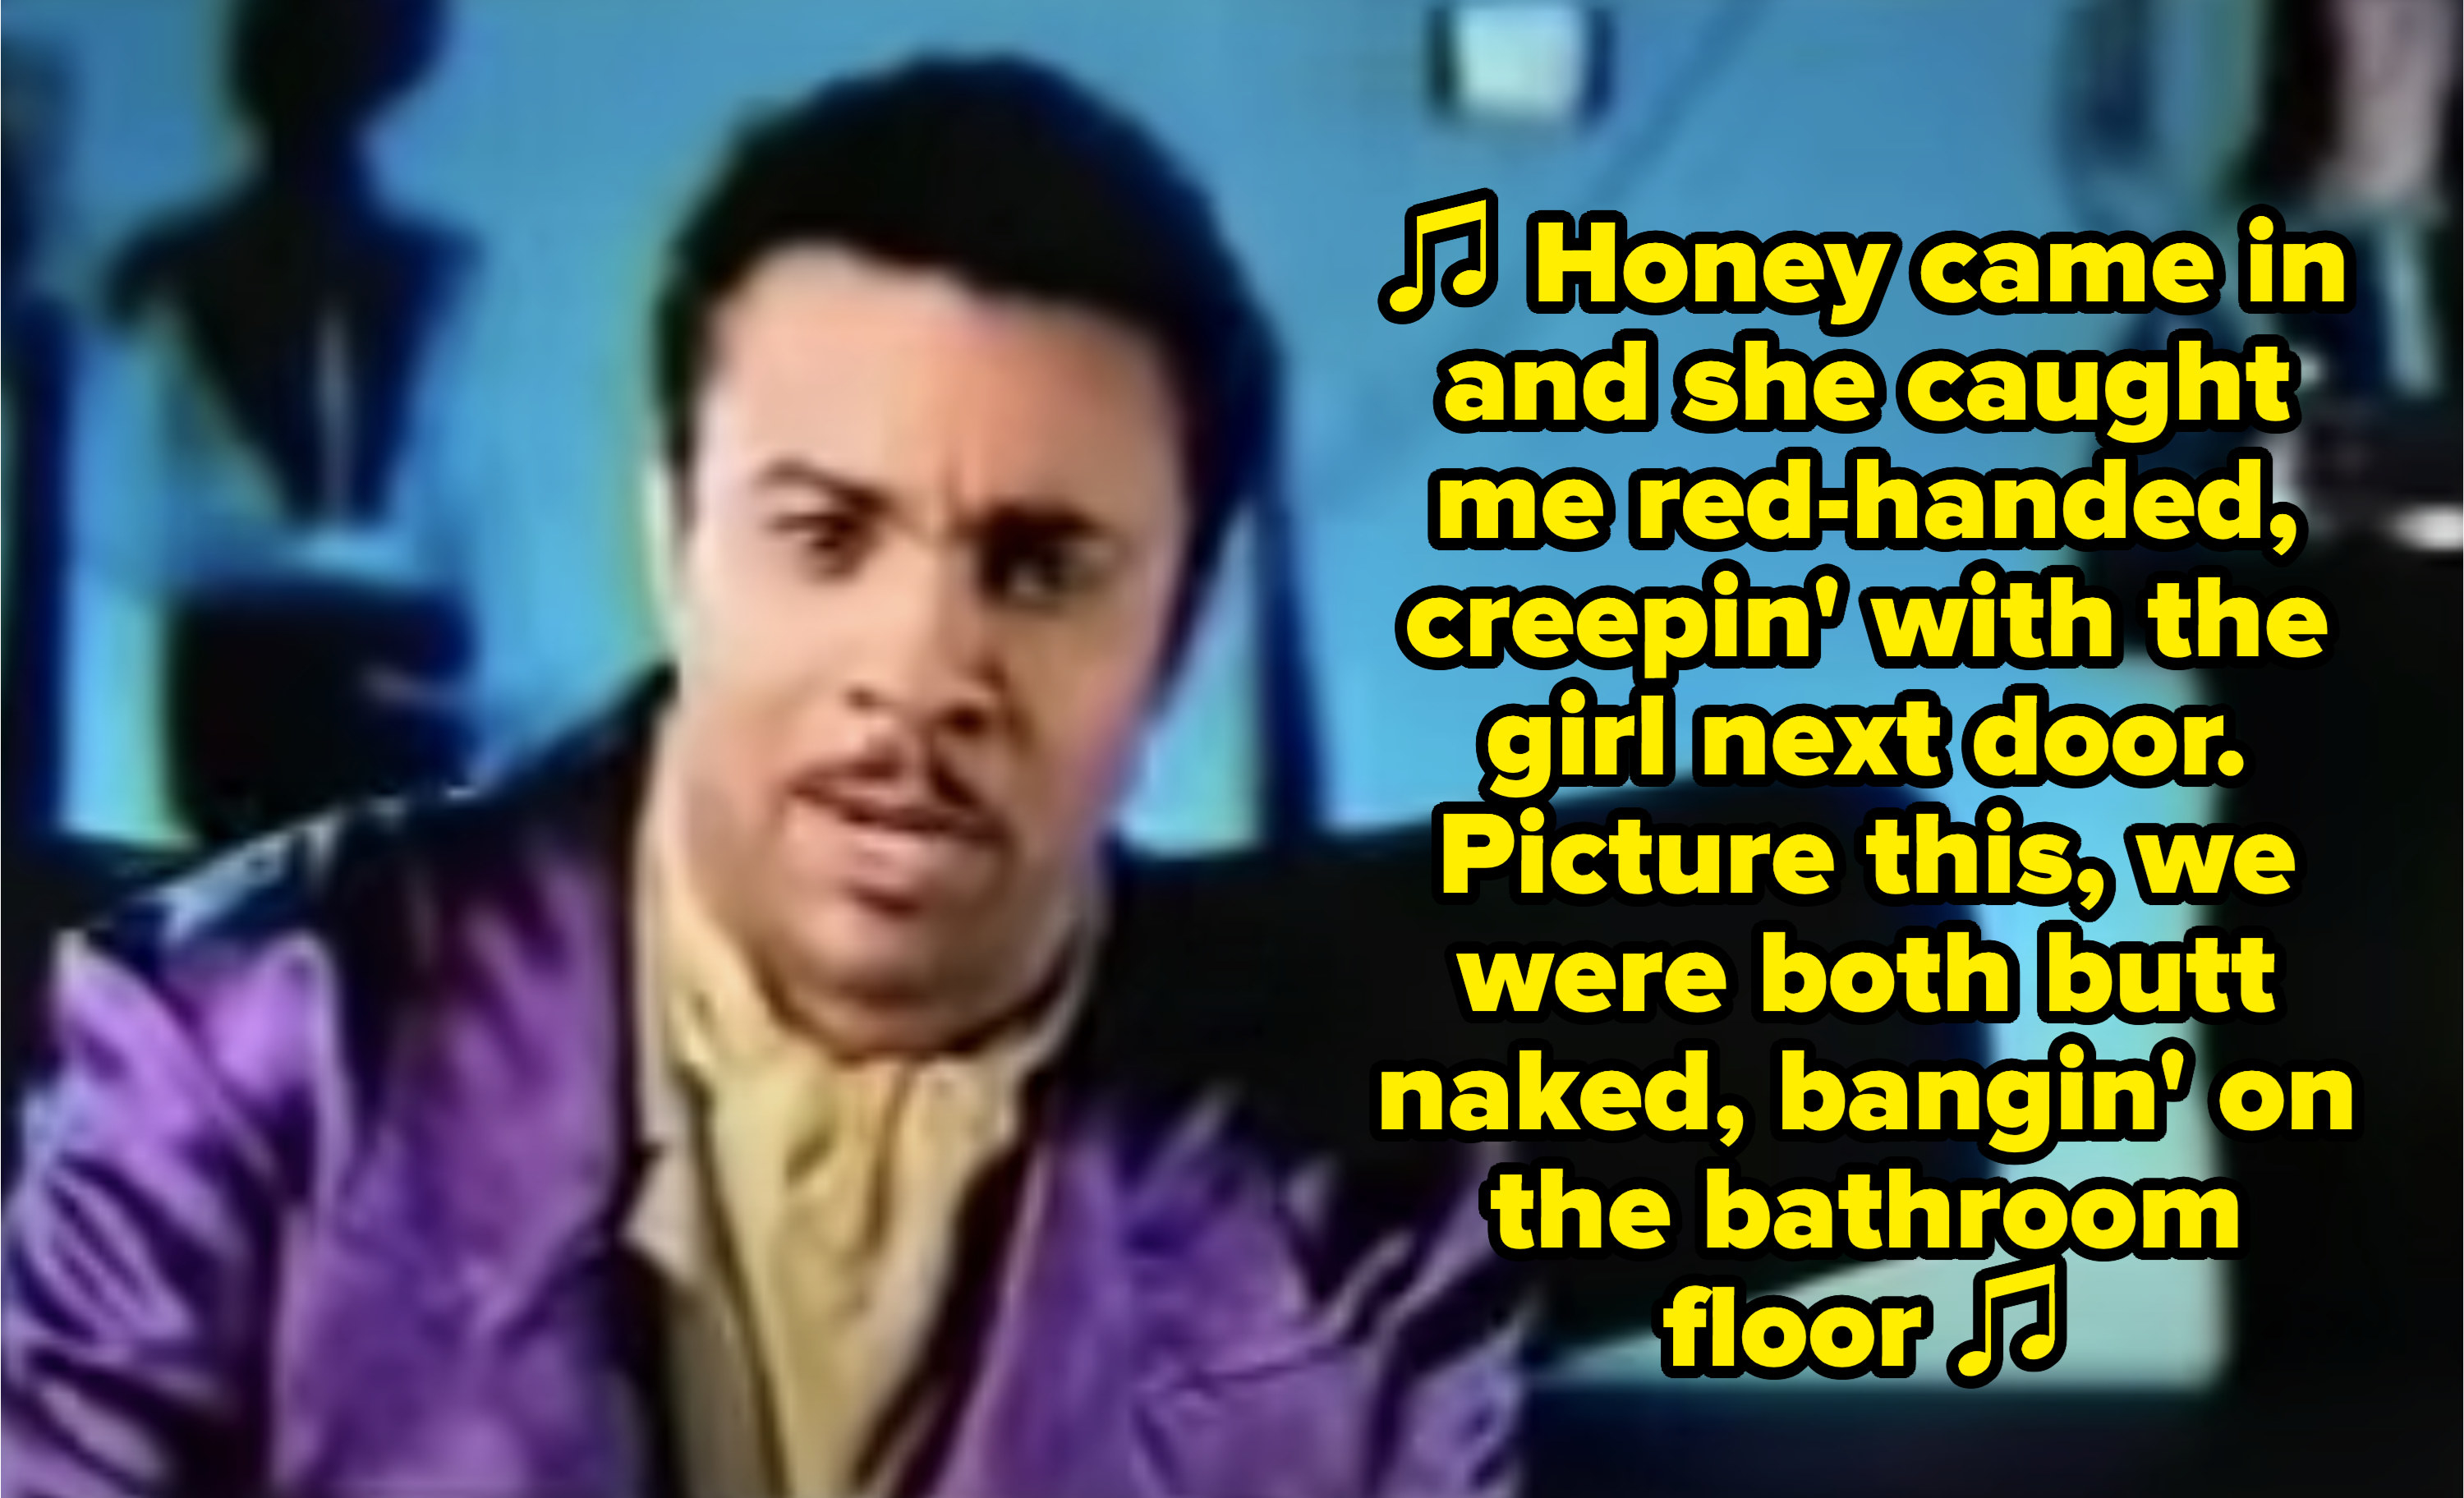 """Shaggy singing: """"Honey came in and she caught me red-handed, creepin' with the girl next door. Picture this, we were both butt naked, bangin' on the bathroom floor"""""""